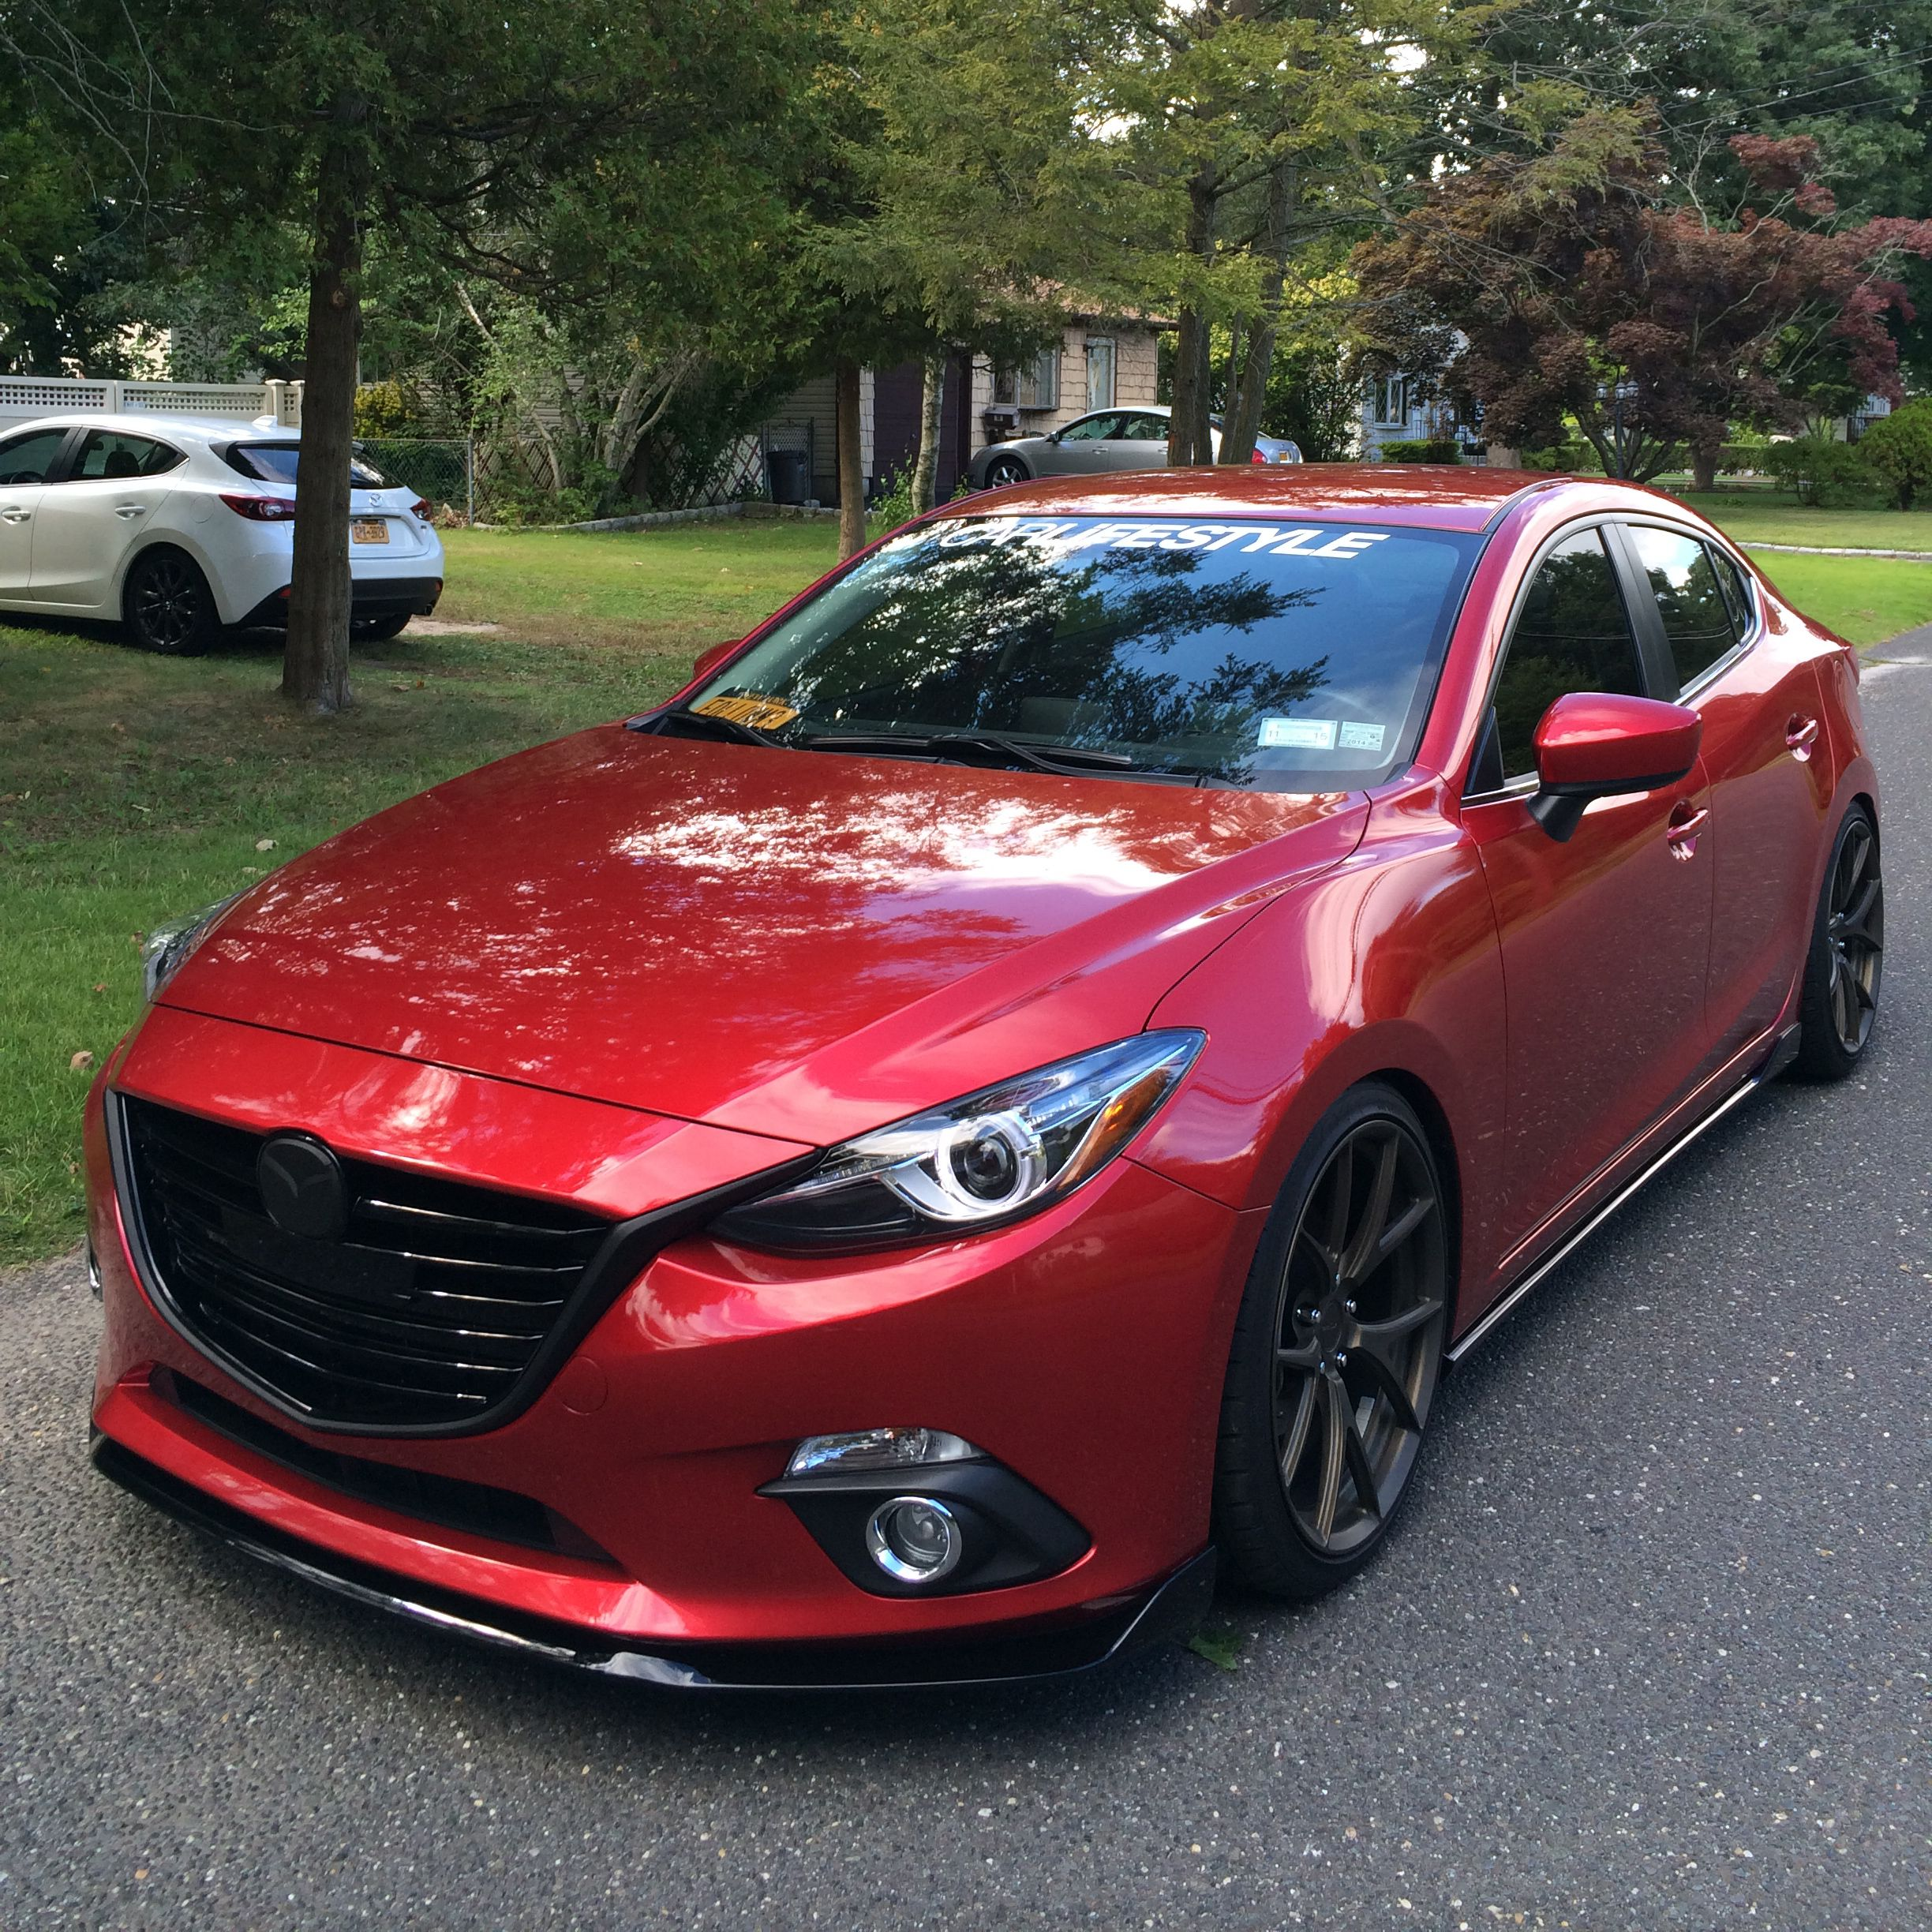 2004 to 2016 mazda 3 forum and mazdaspeed 3 forums view single post vinyl wrapped chrome. Black Bedroom Furniture Sets. Home Design Ideas